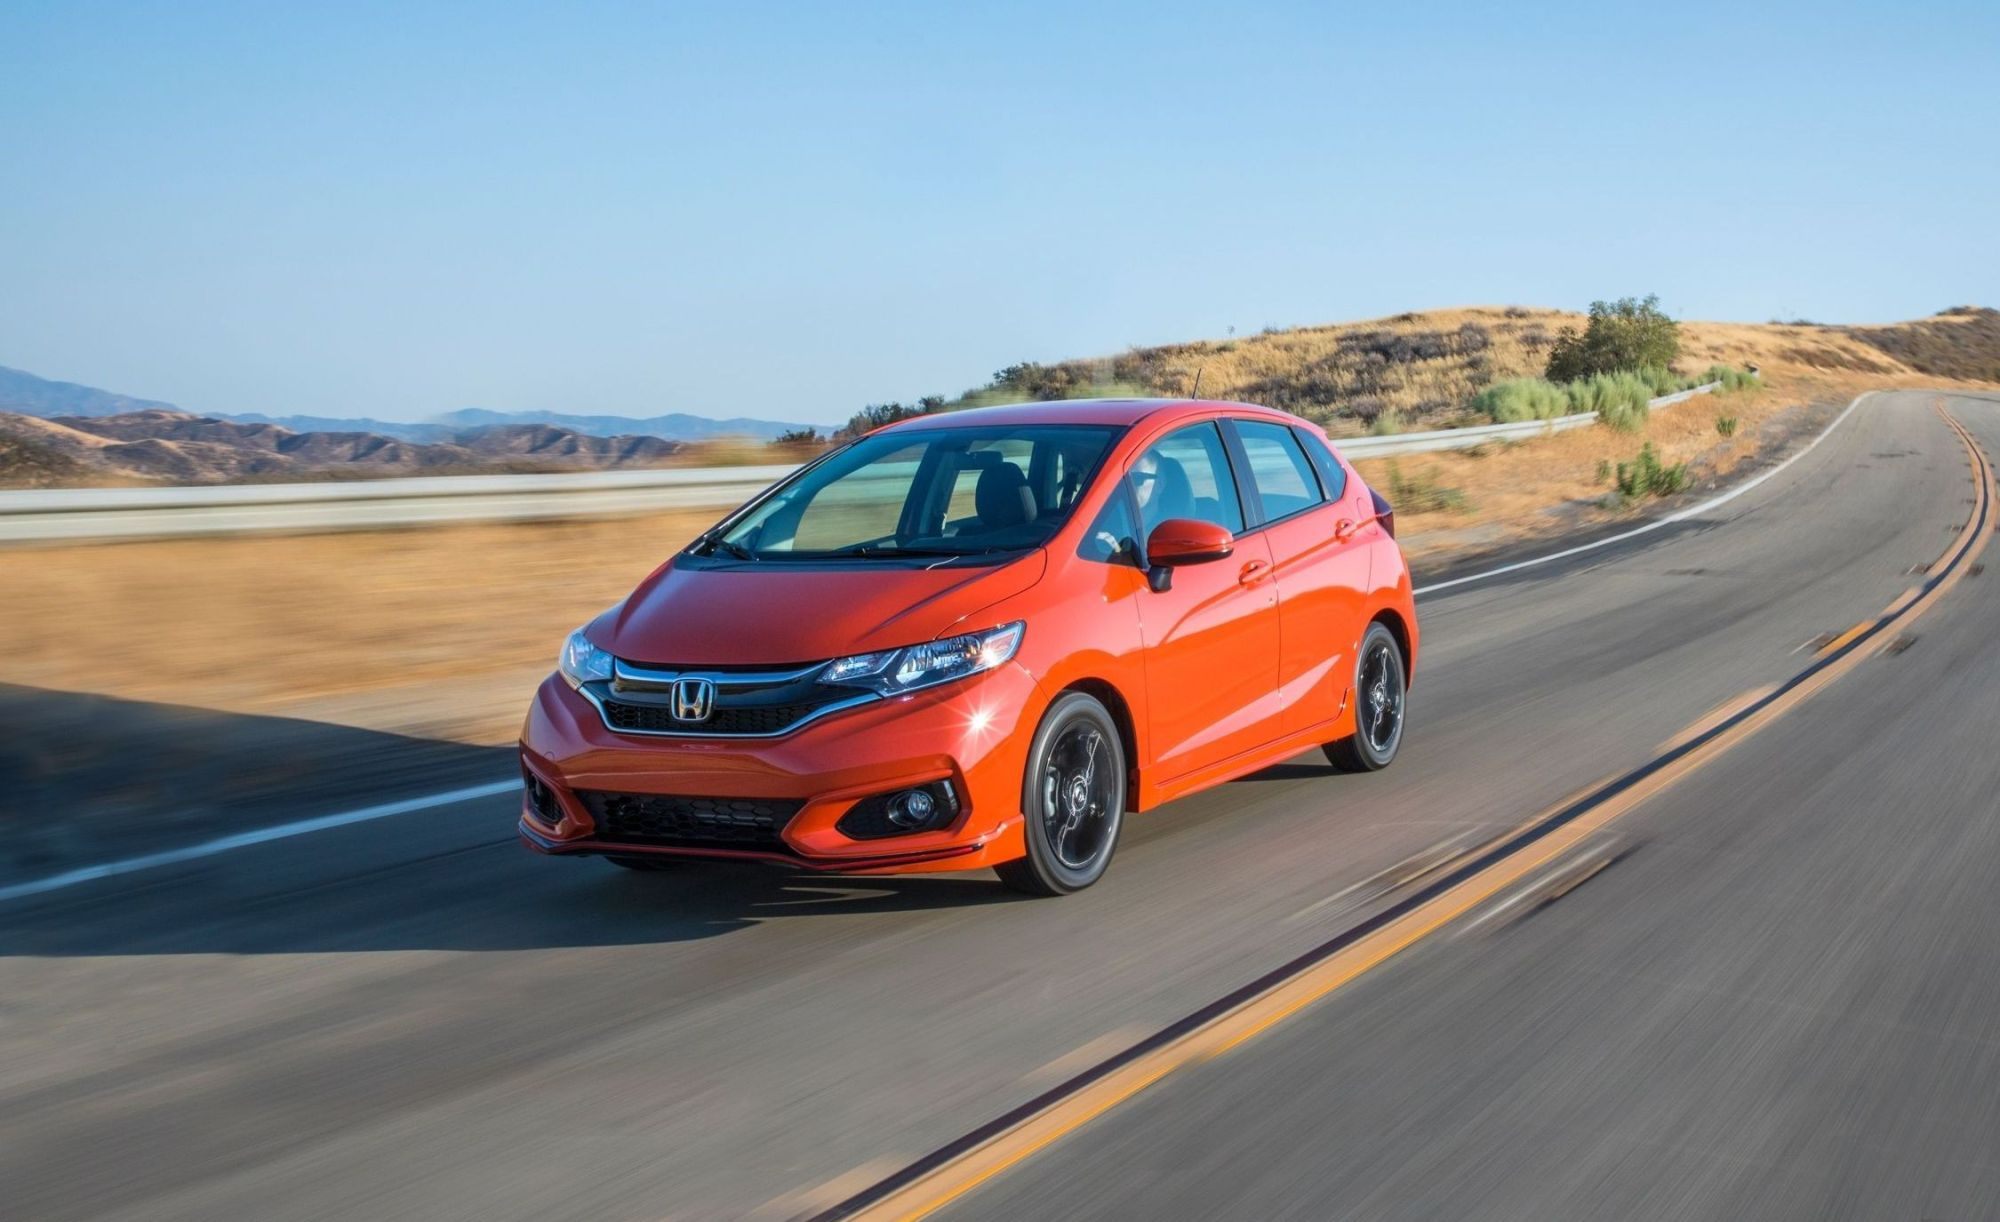 hight resolution of 2019 honda fit reviews honda fit price photos and specs car honda fit 2008 starter location 2008 honda fit engine cylinder diagram